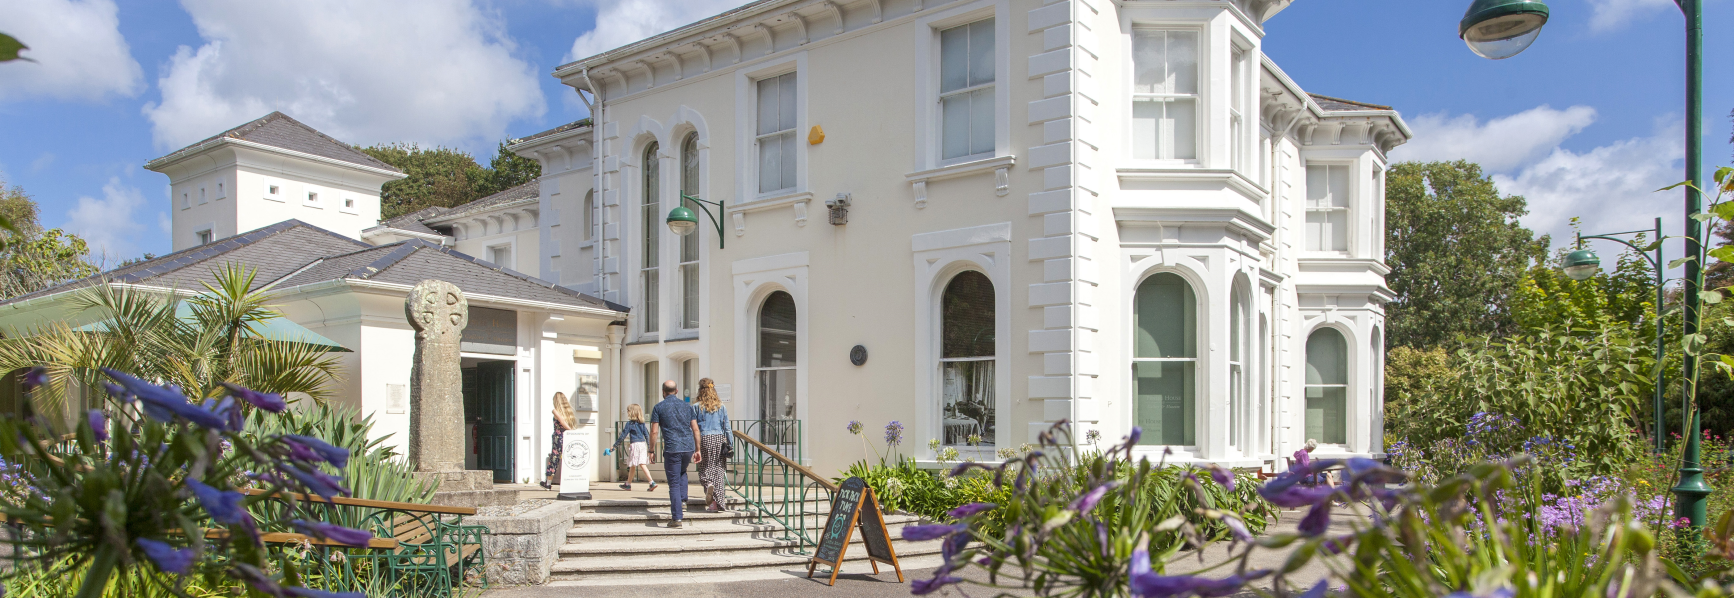 A family walks up the steps towards the entrance of Penlee House Gallery Museum